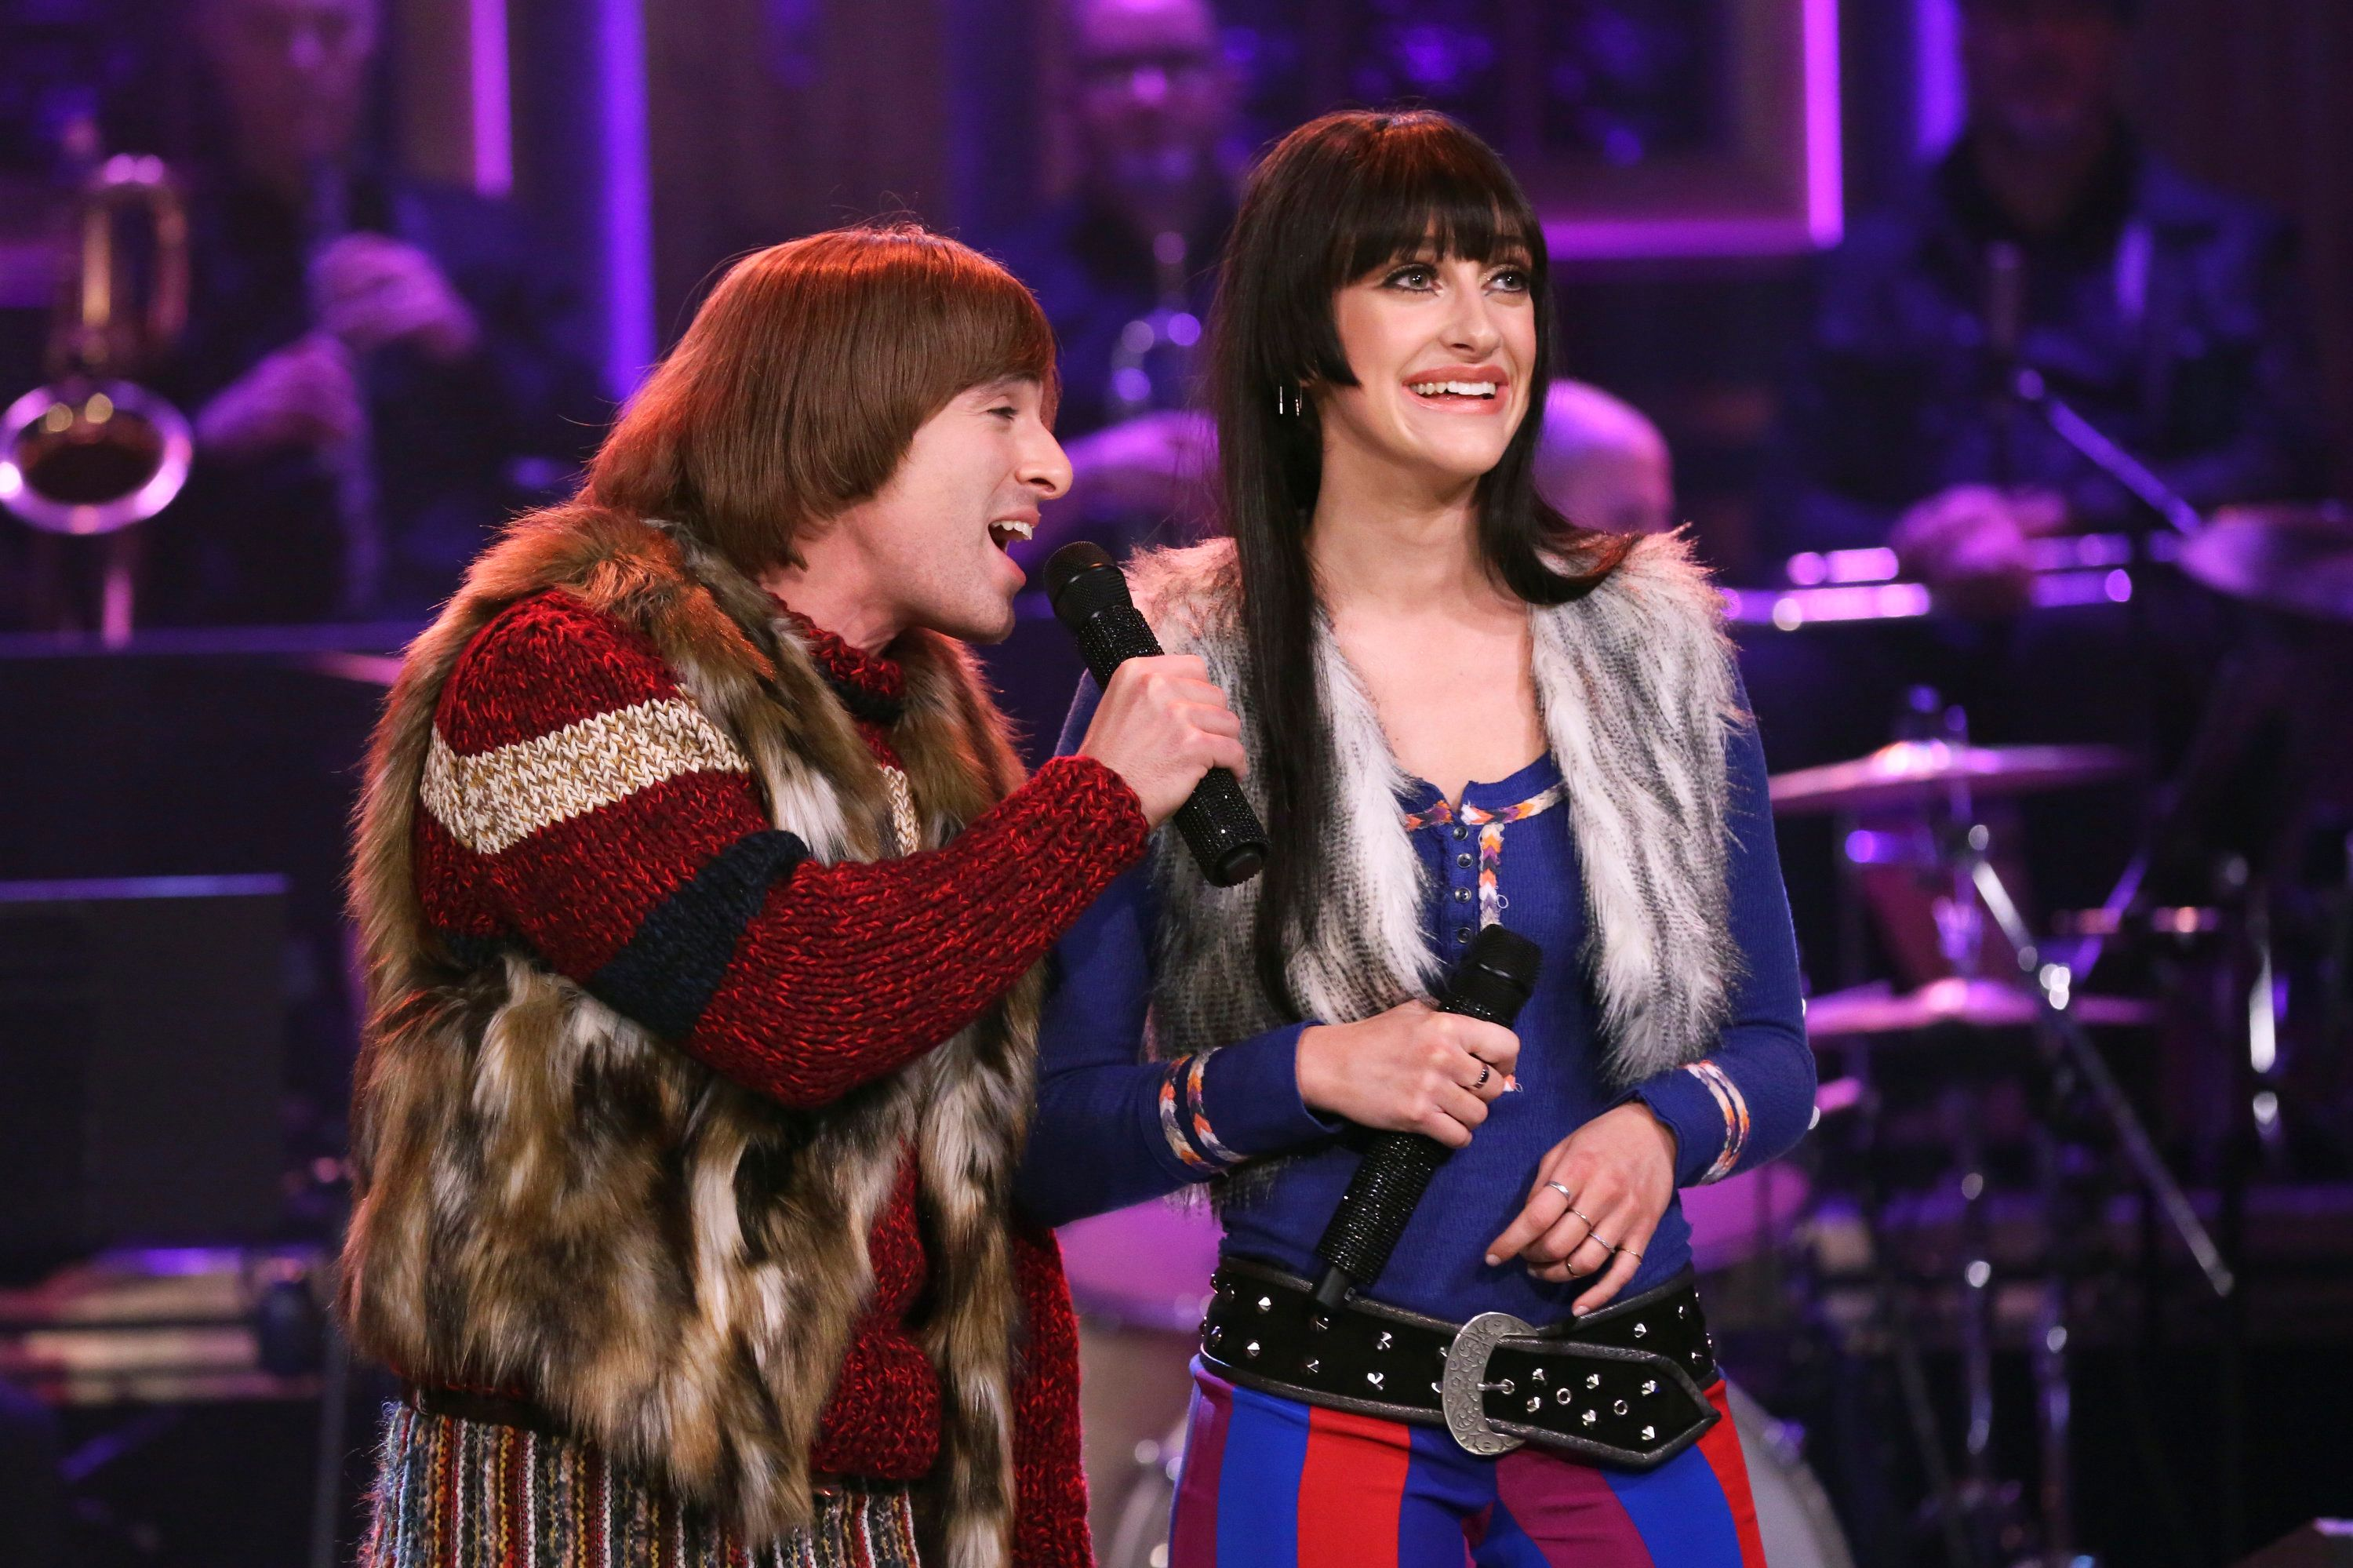 THE TONIGHT SHOW STARRING JIMMY FALLON -- Episode 1048 -- Pictured: (l-r) Musical guest 'The Cher Show' cast members Jarrod Spector and Micaela Diamond perform on April 15, 2019 -- (Photo by: Andrew Lipovsky/NBC/NBCU Photo Bank via Getty Images)